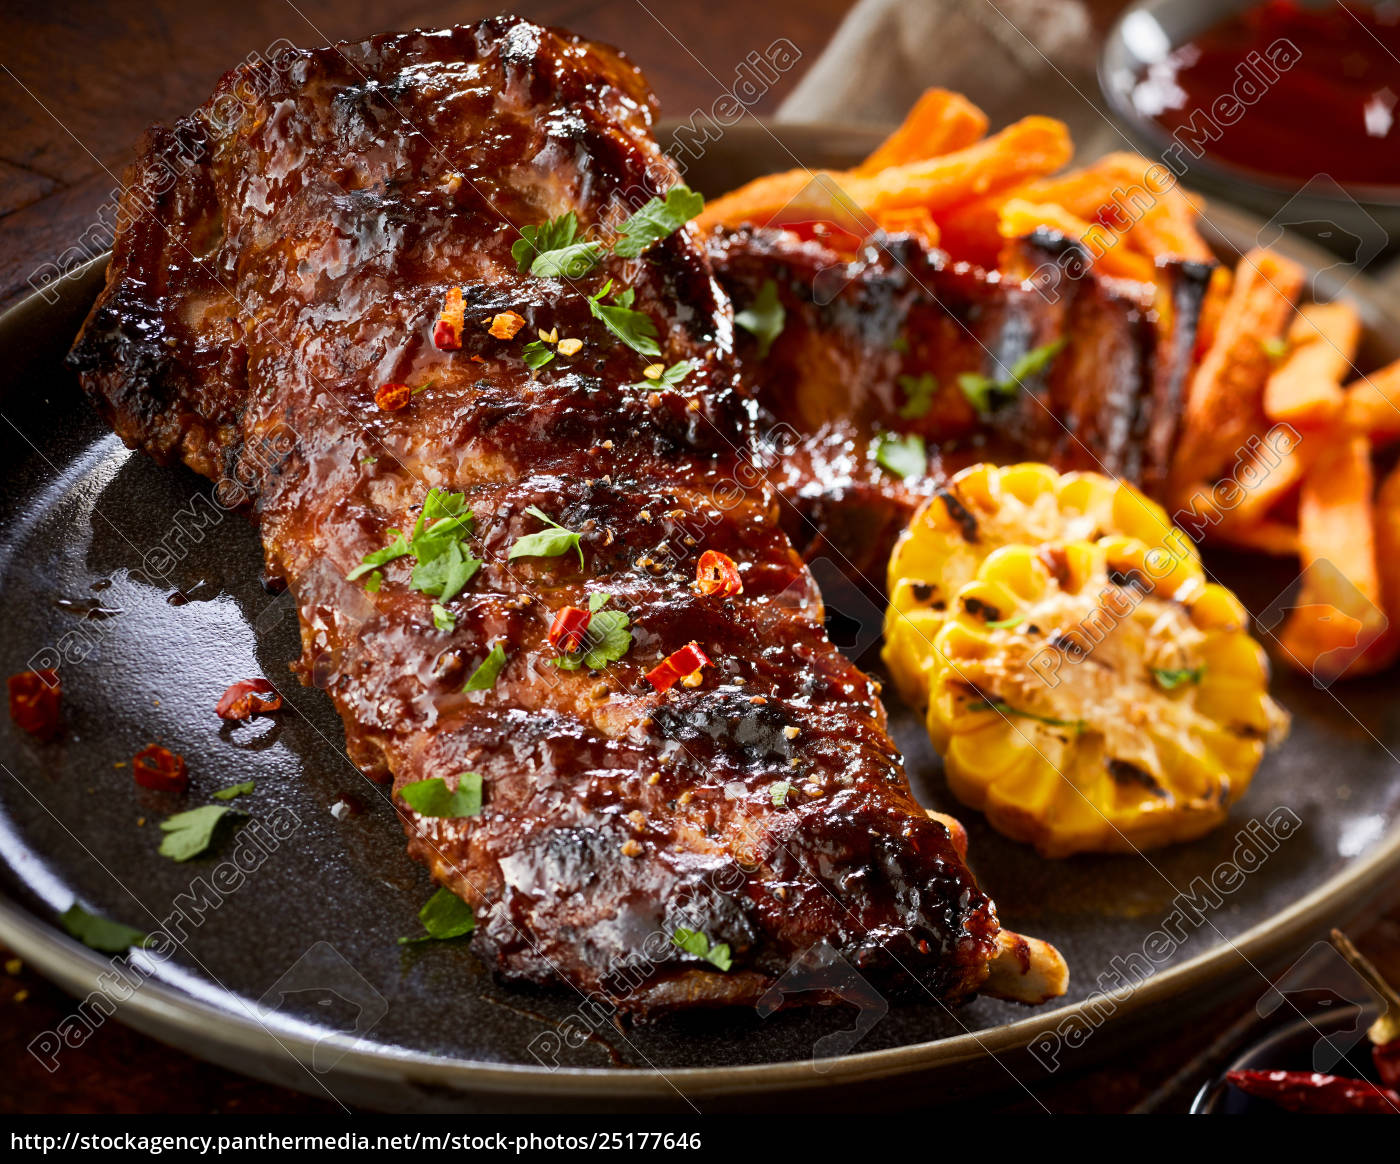 spicy, marinated, barbecued, portion, of, spare - 25177646